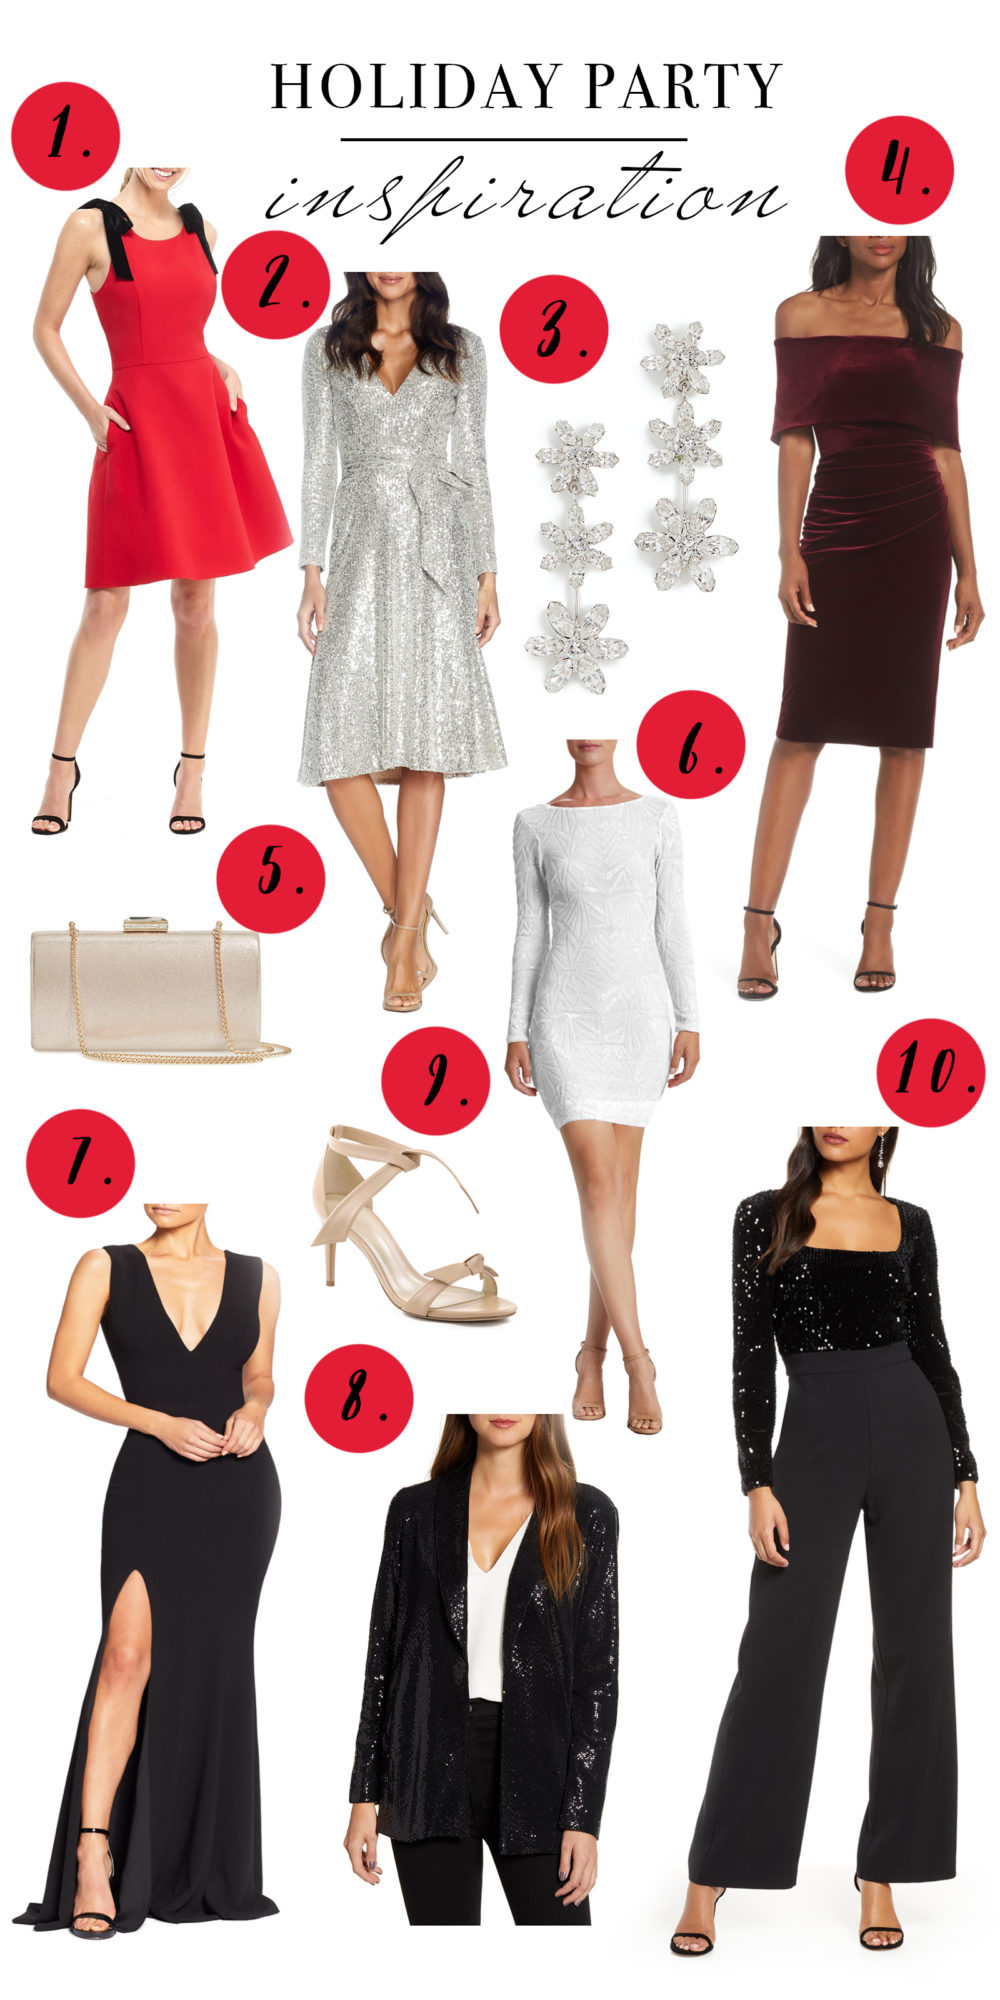 holidaypartyinspiration2019 | Holiday party dresses | Sequin dresses | NYE dresses